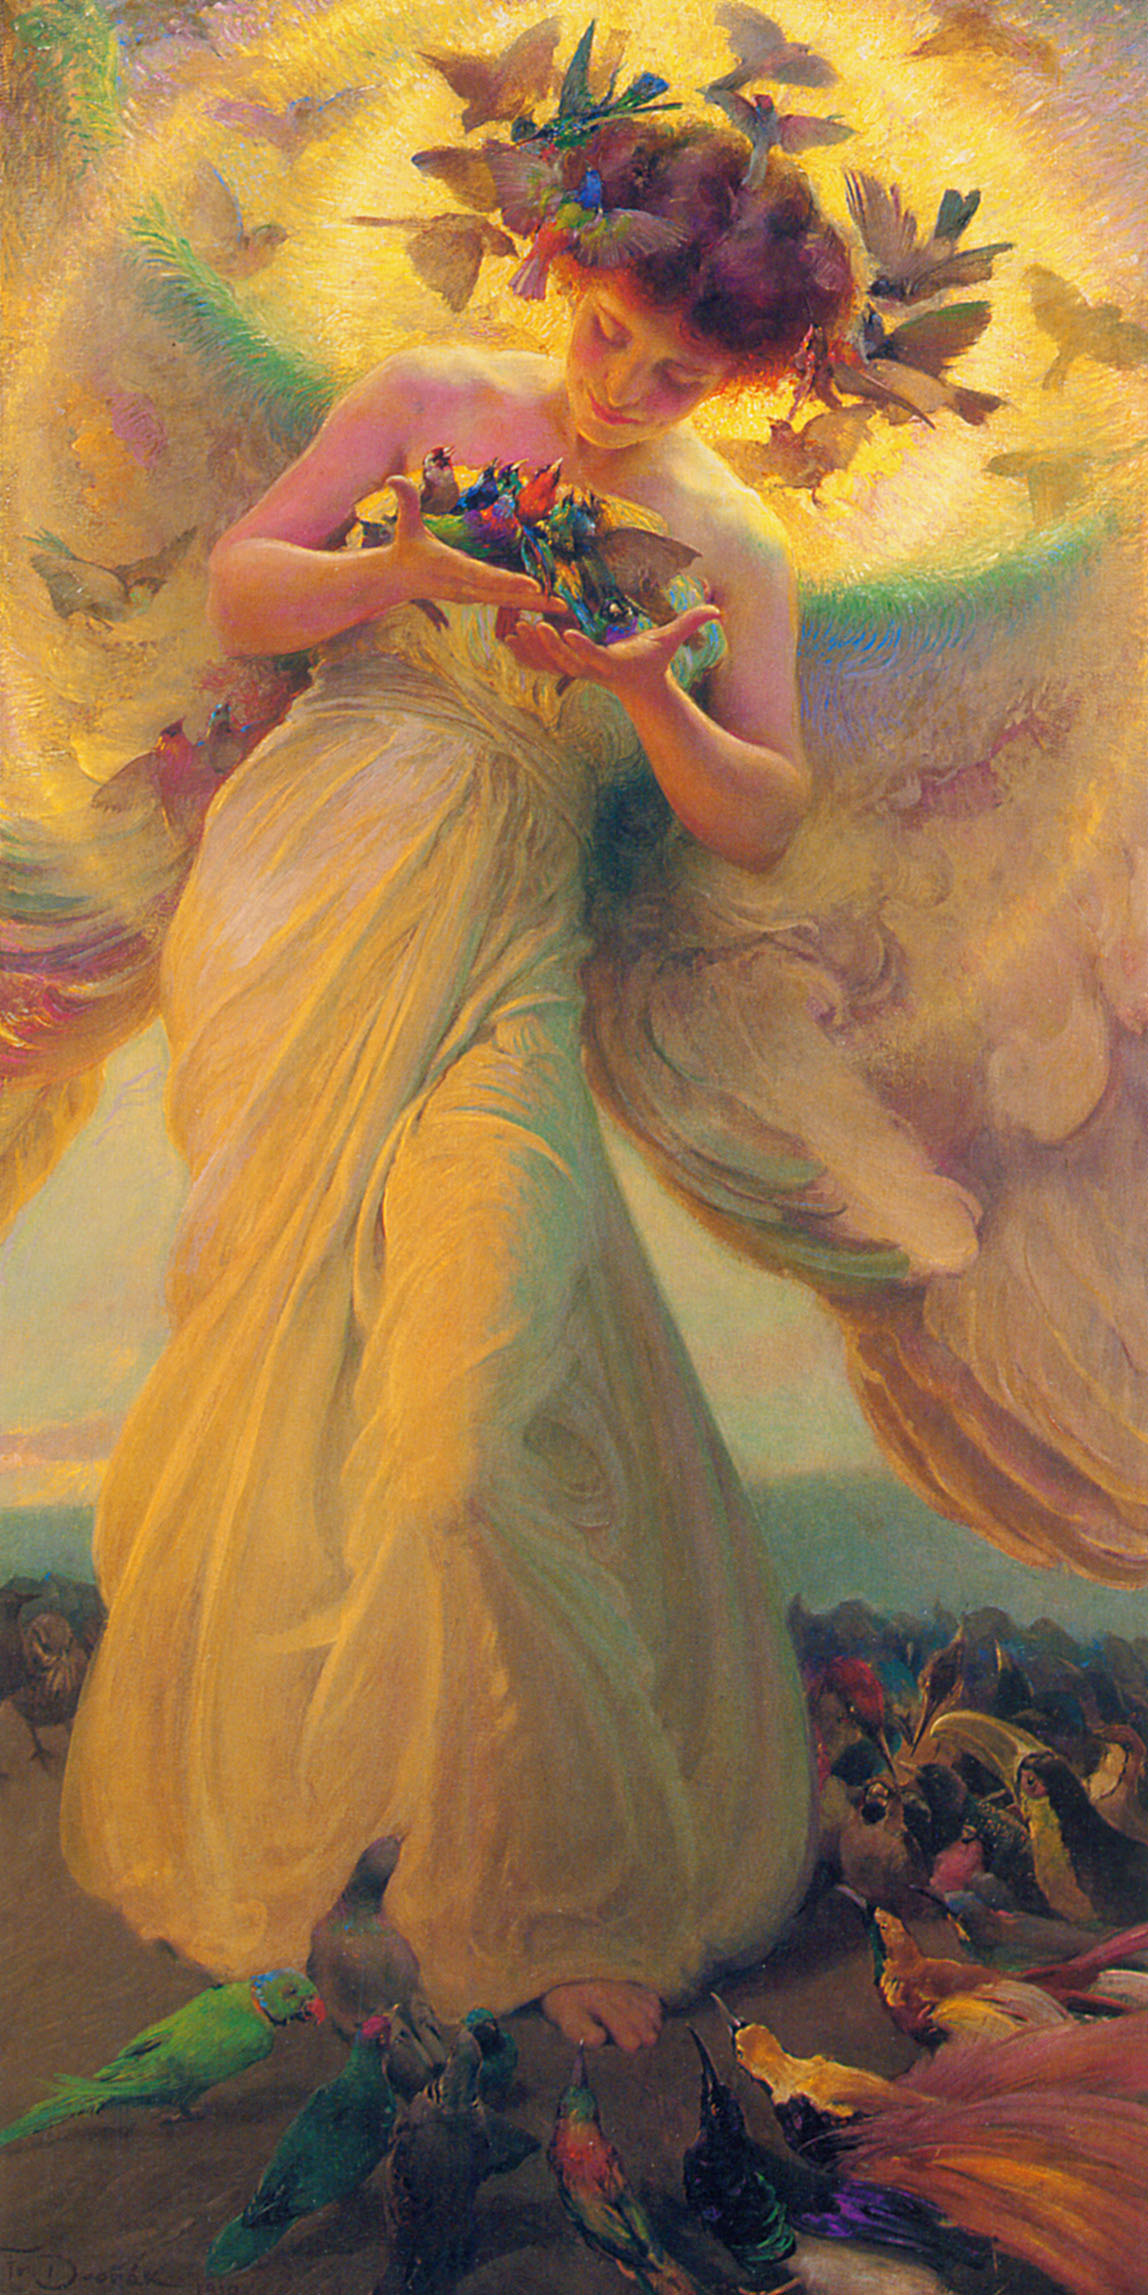 http://upload.wikimedia.org/wikipedia/commons/f/f6/Dvorak_angel.jpg